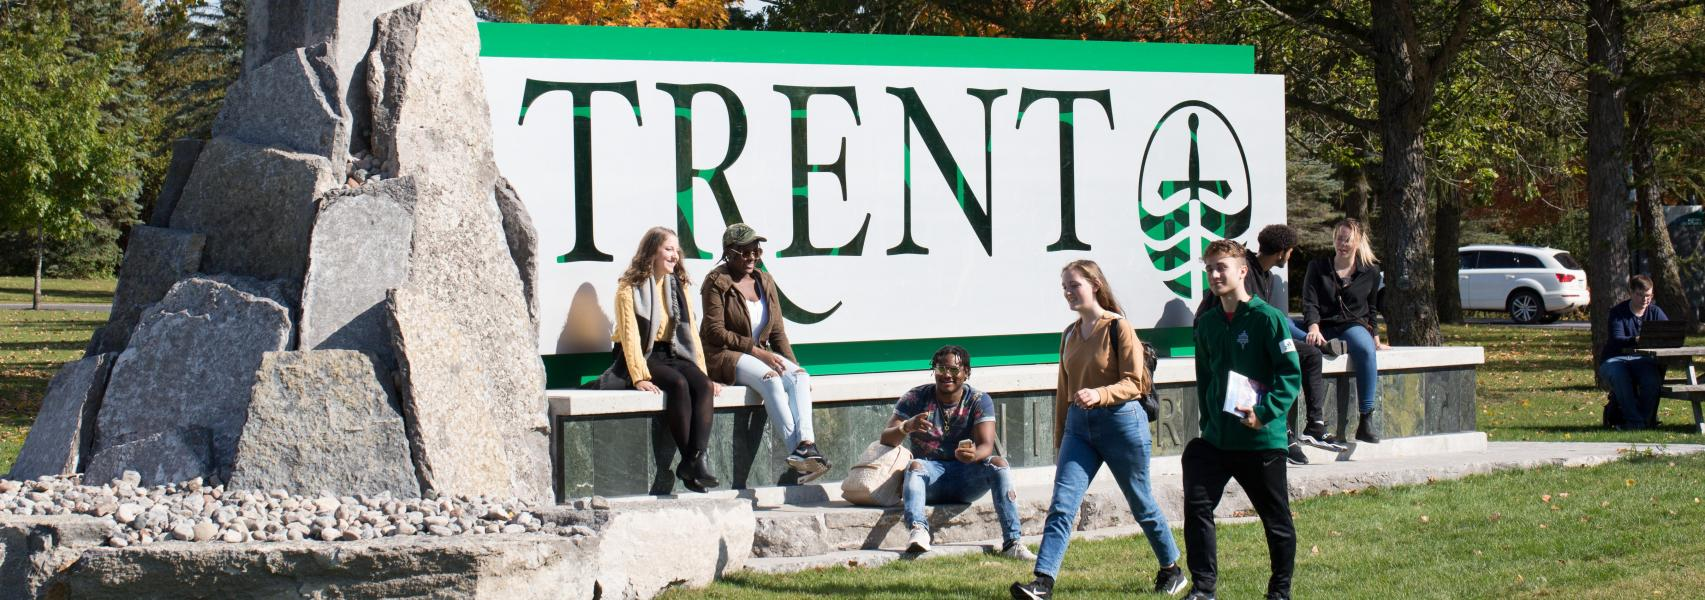 Trent University Peterborough Campus sign with students lounging around.